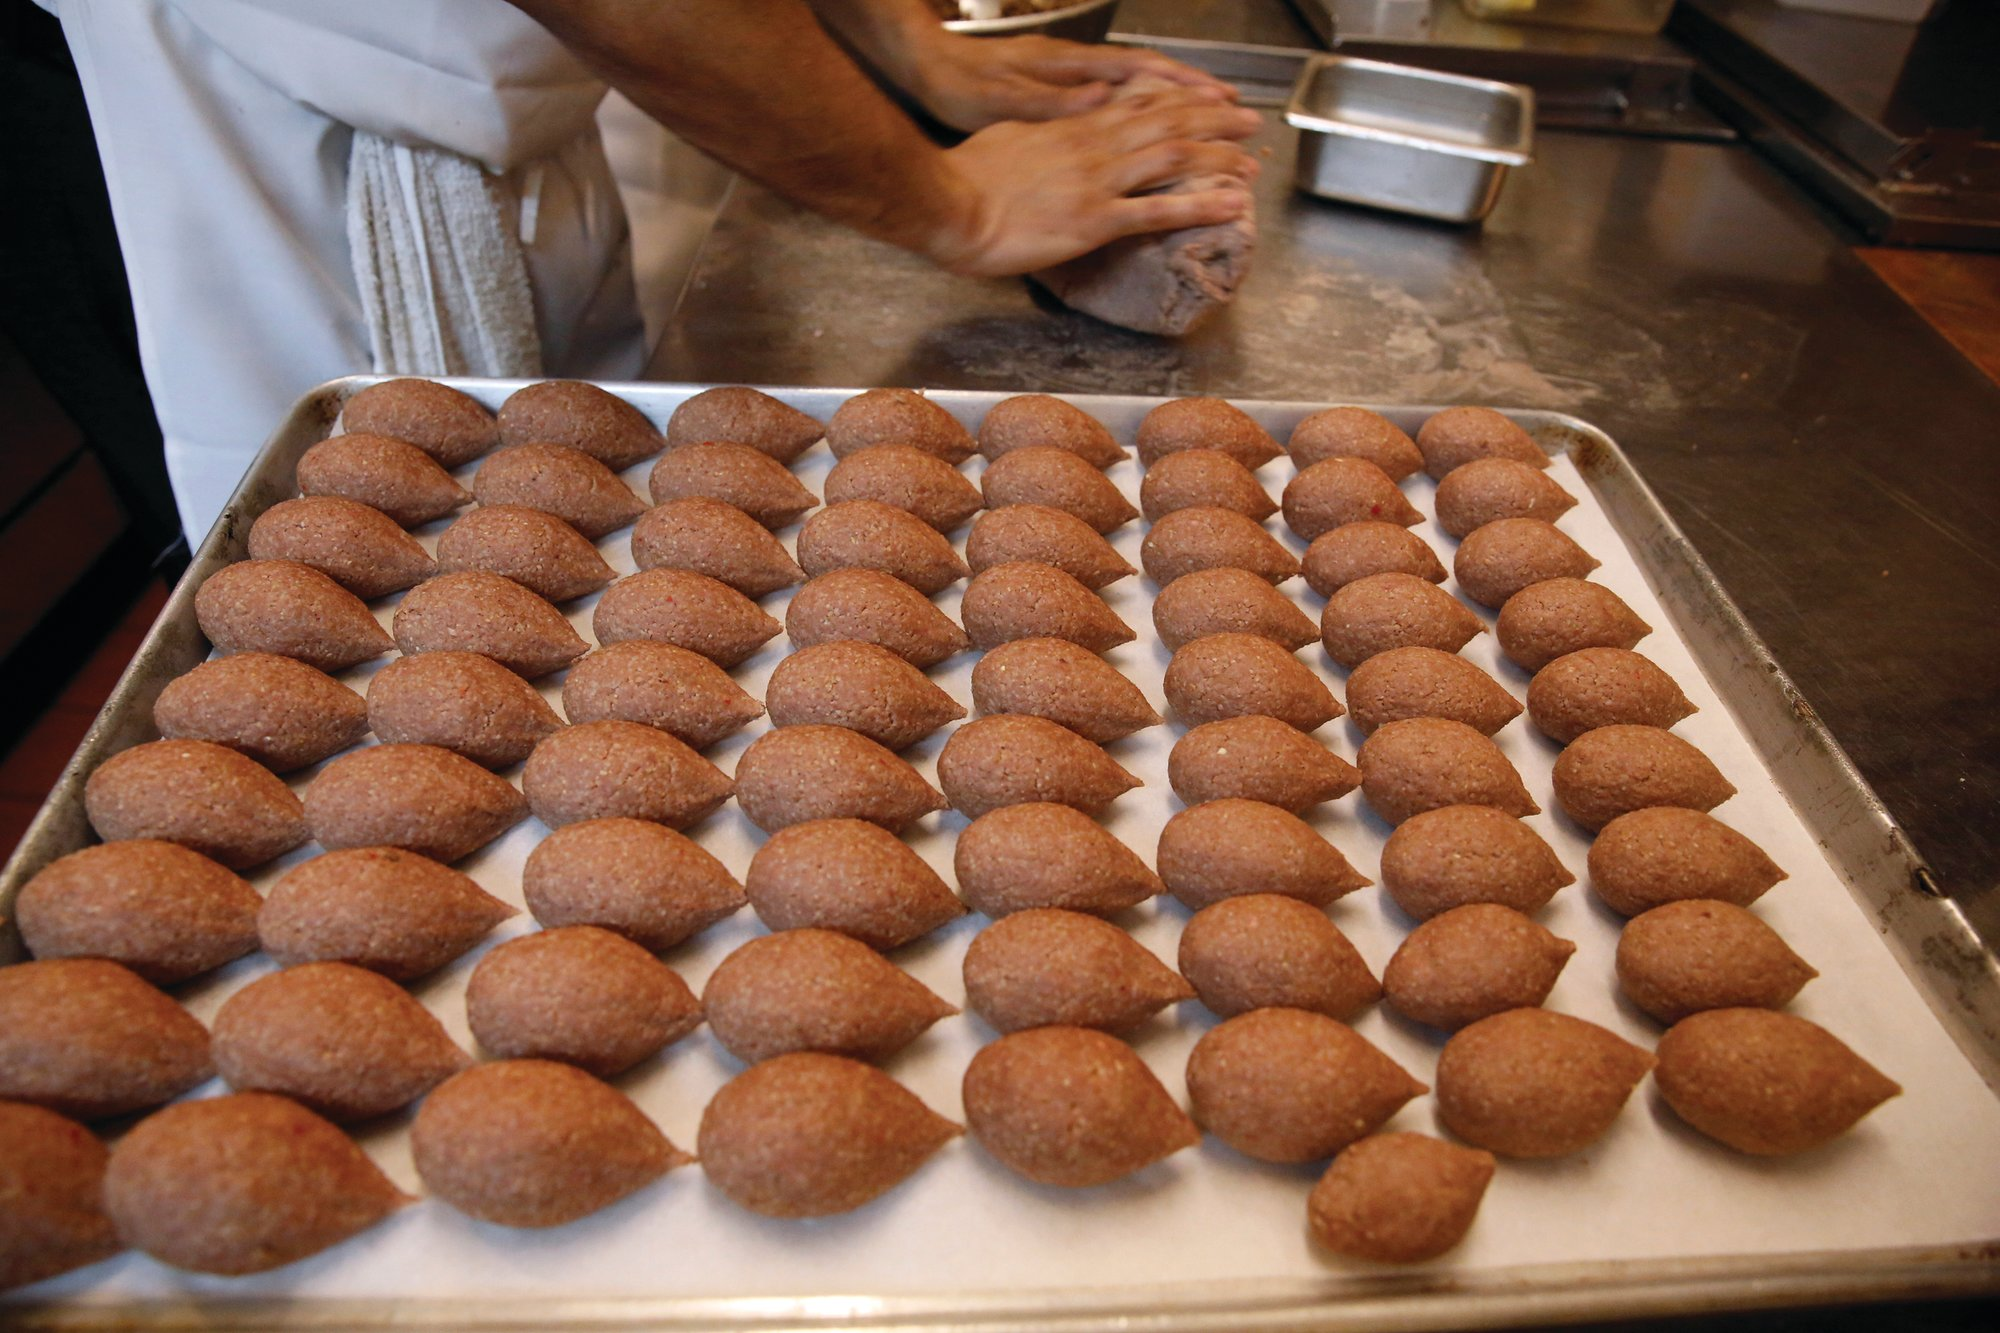 Chef Diaa Alhanoun rolls out ground meat while preparing kibbeh. Kibbeh meatballs are a made of ground beef, bulgur wheat and onions, seasoned with cinnamon and allspice, formed into a hollow shell for stuffing, then deep fried or baked.